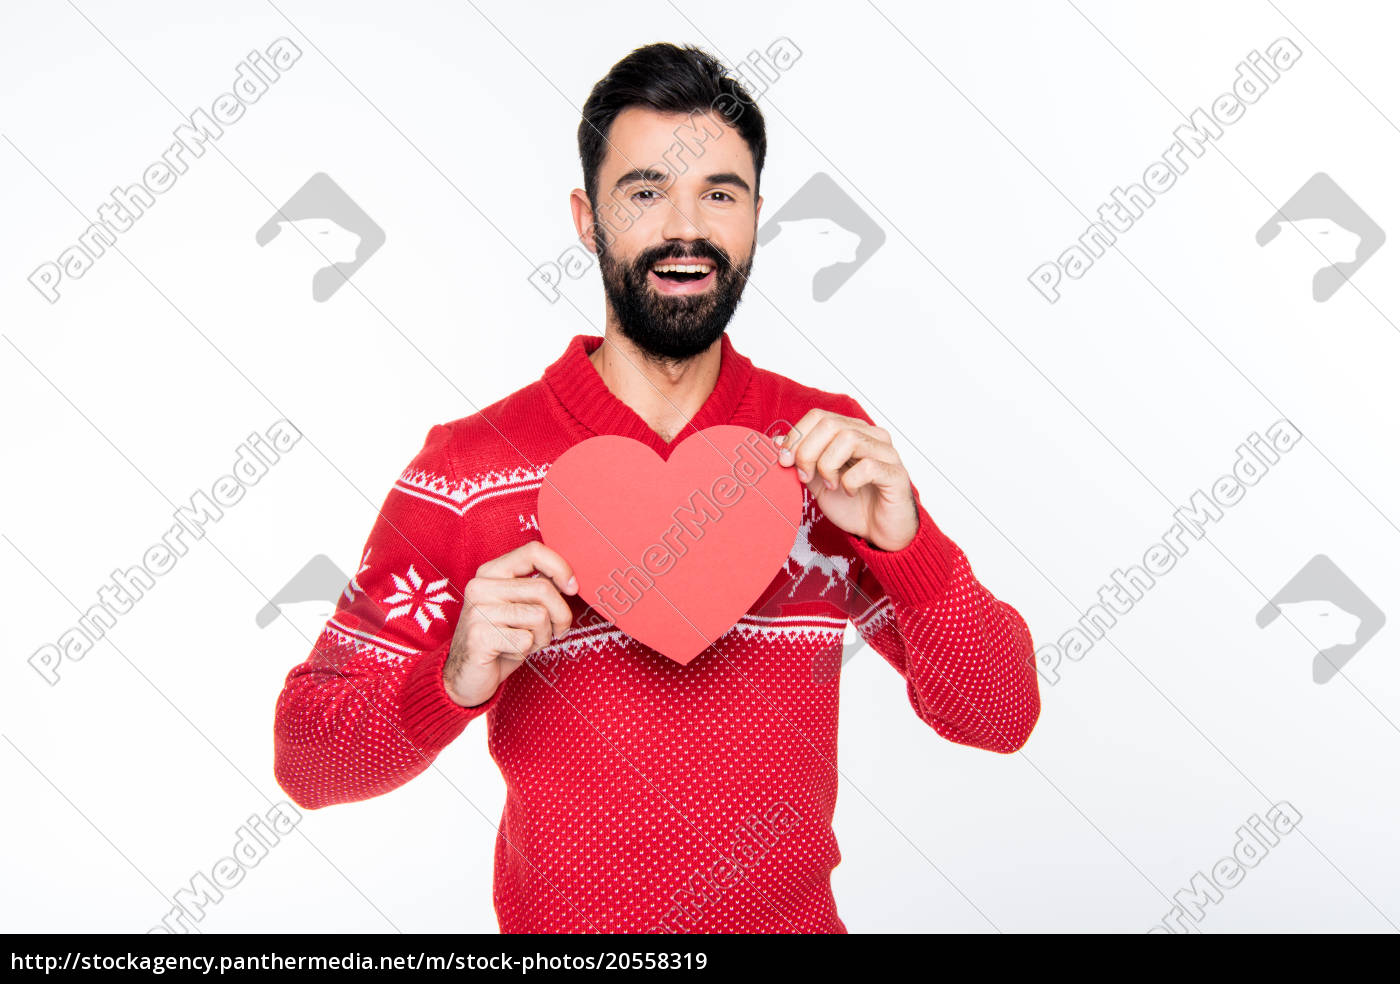 smiling, man, holding, red, heart - 20558319